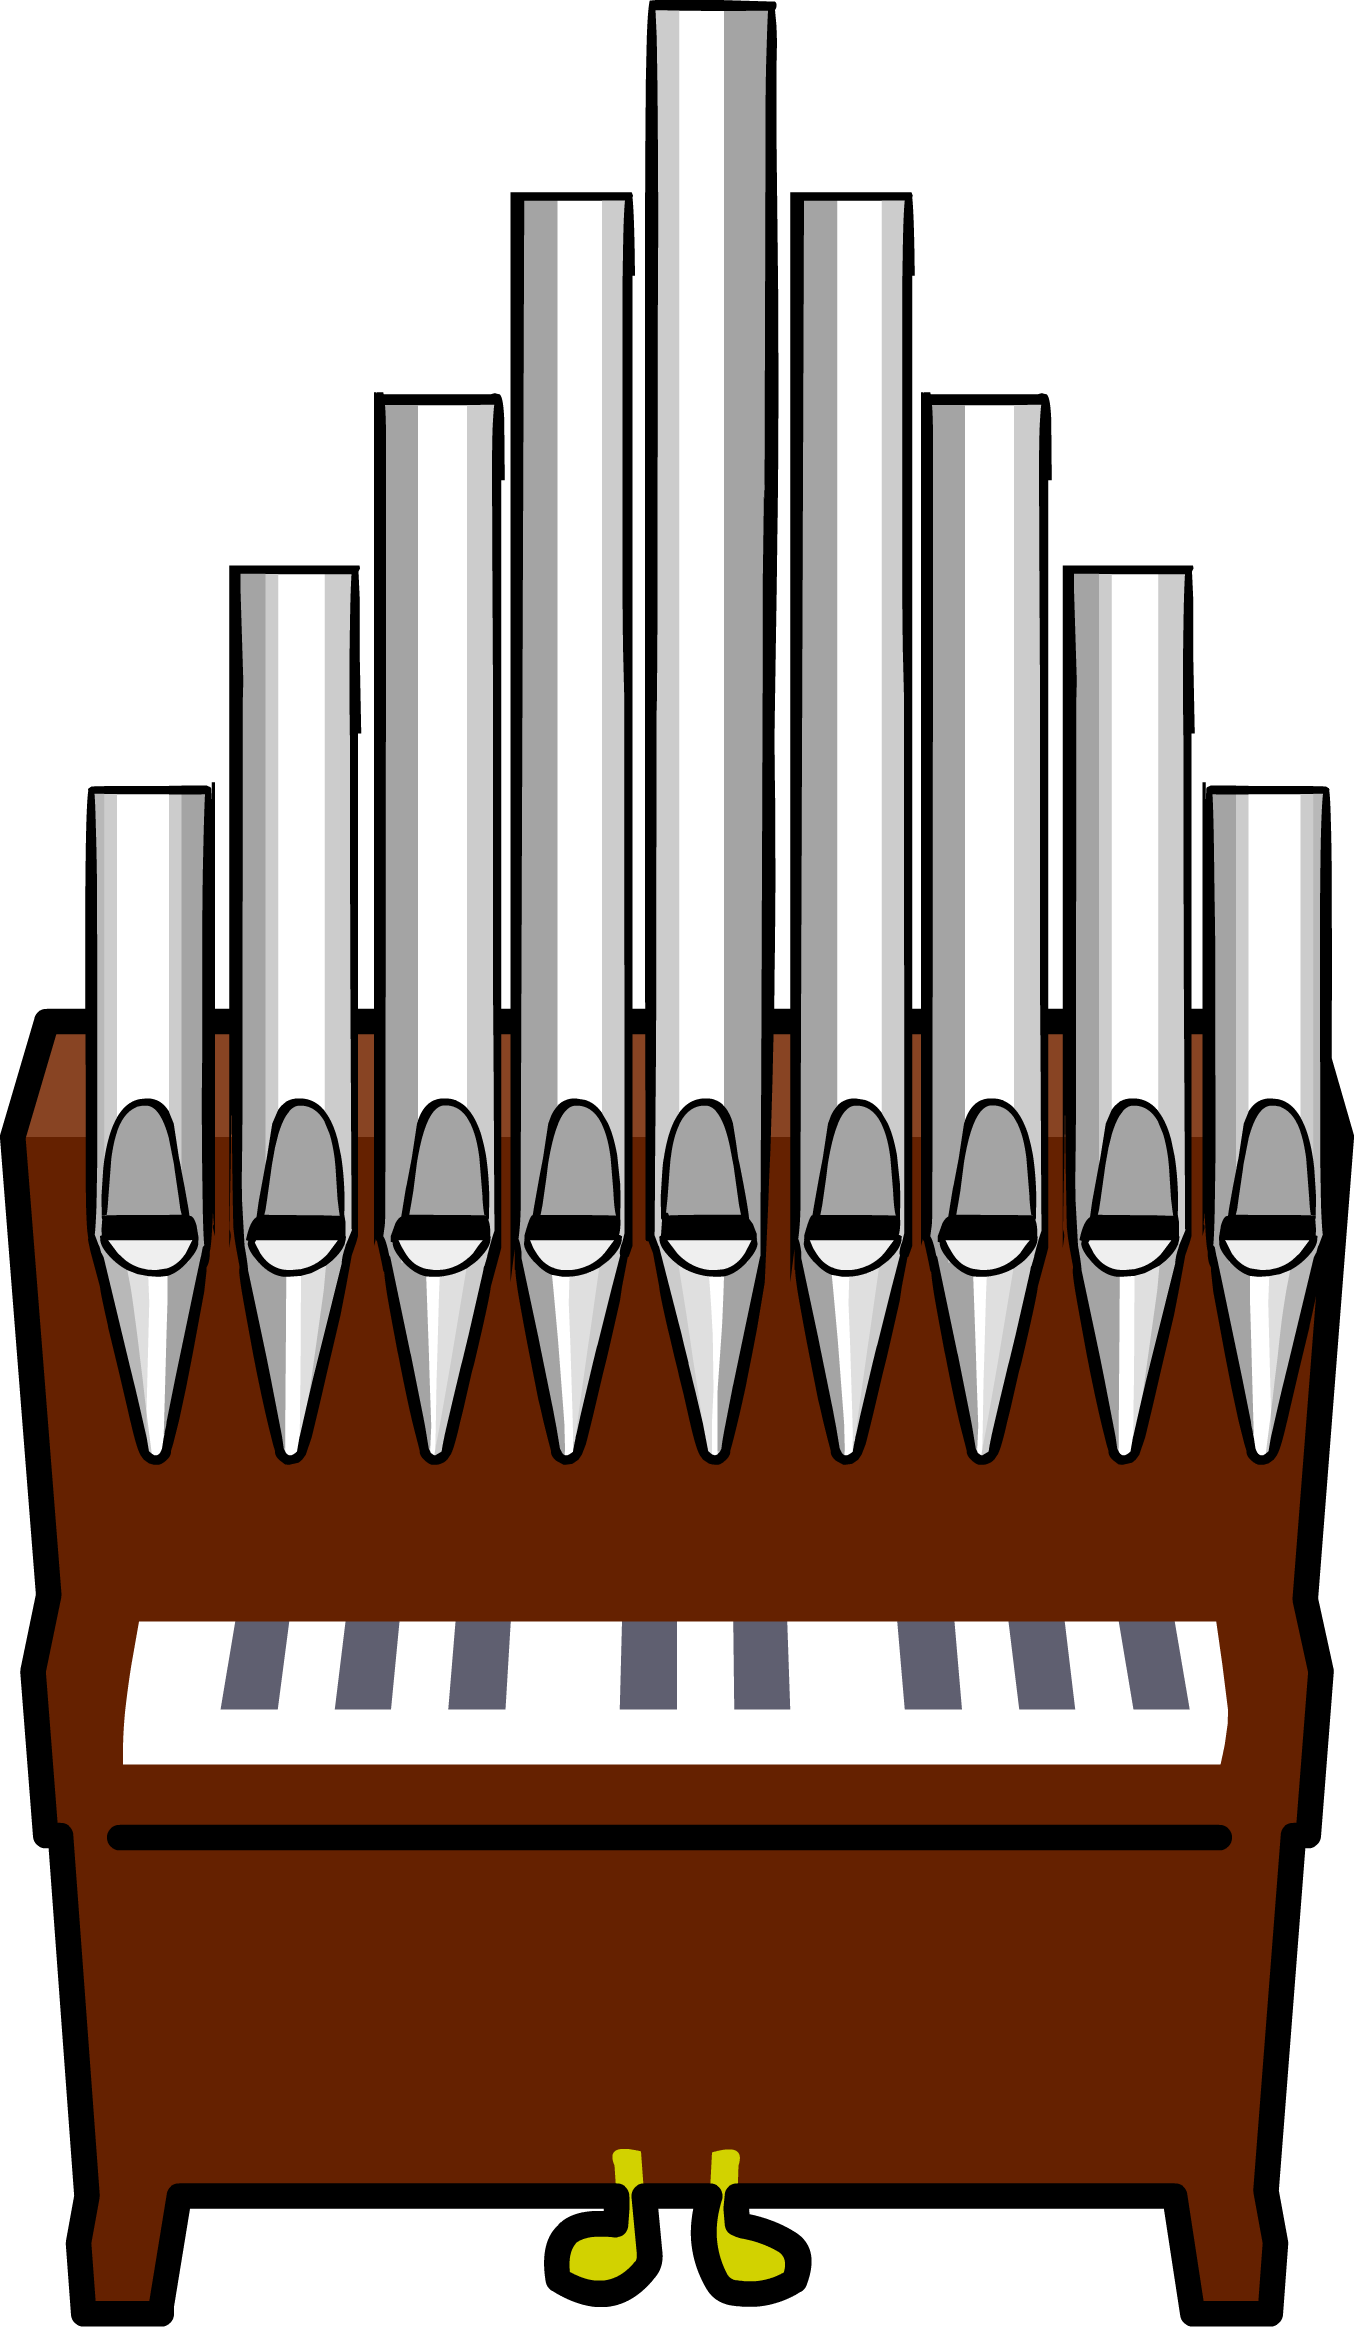 Image pipe organ png. Piano clipart woman